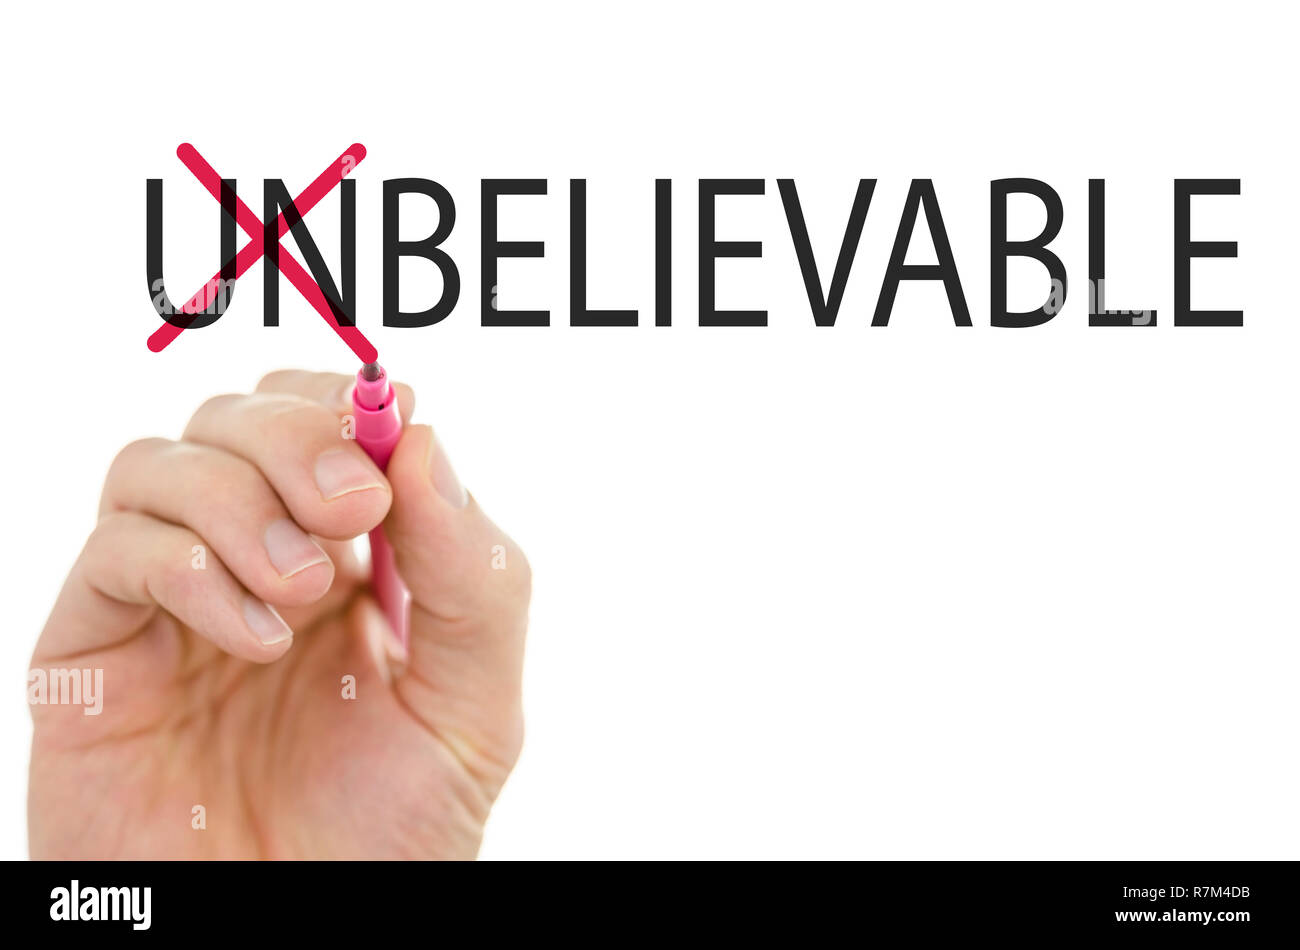 Changing word unbelievable into believable by crossing off letters un. Stock Photo